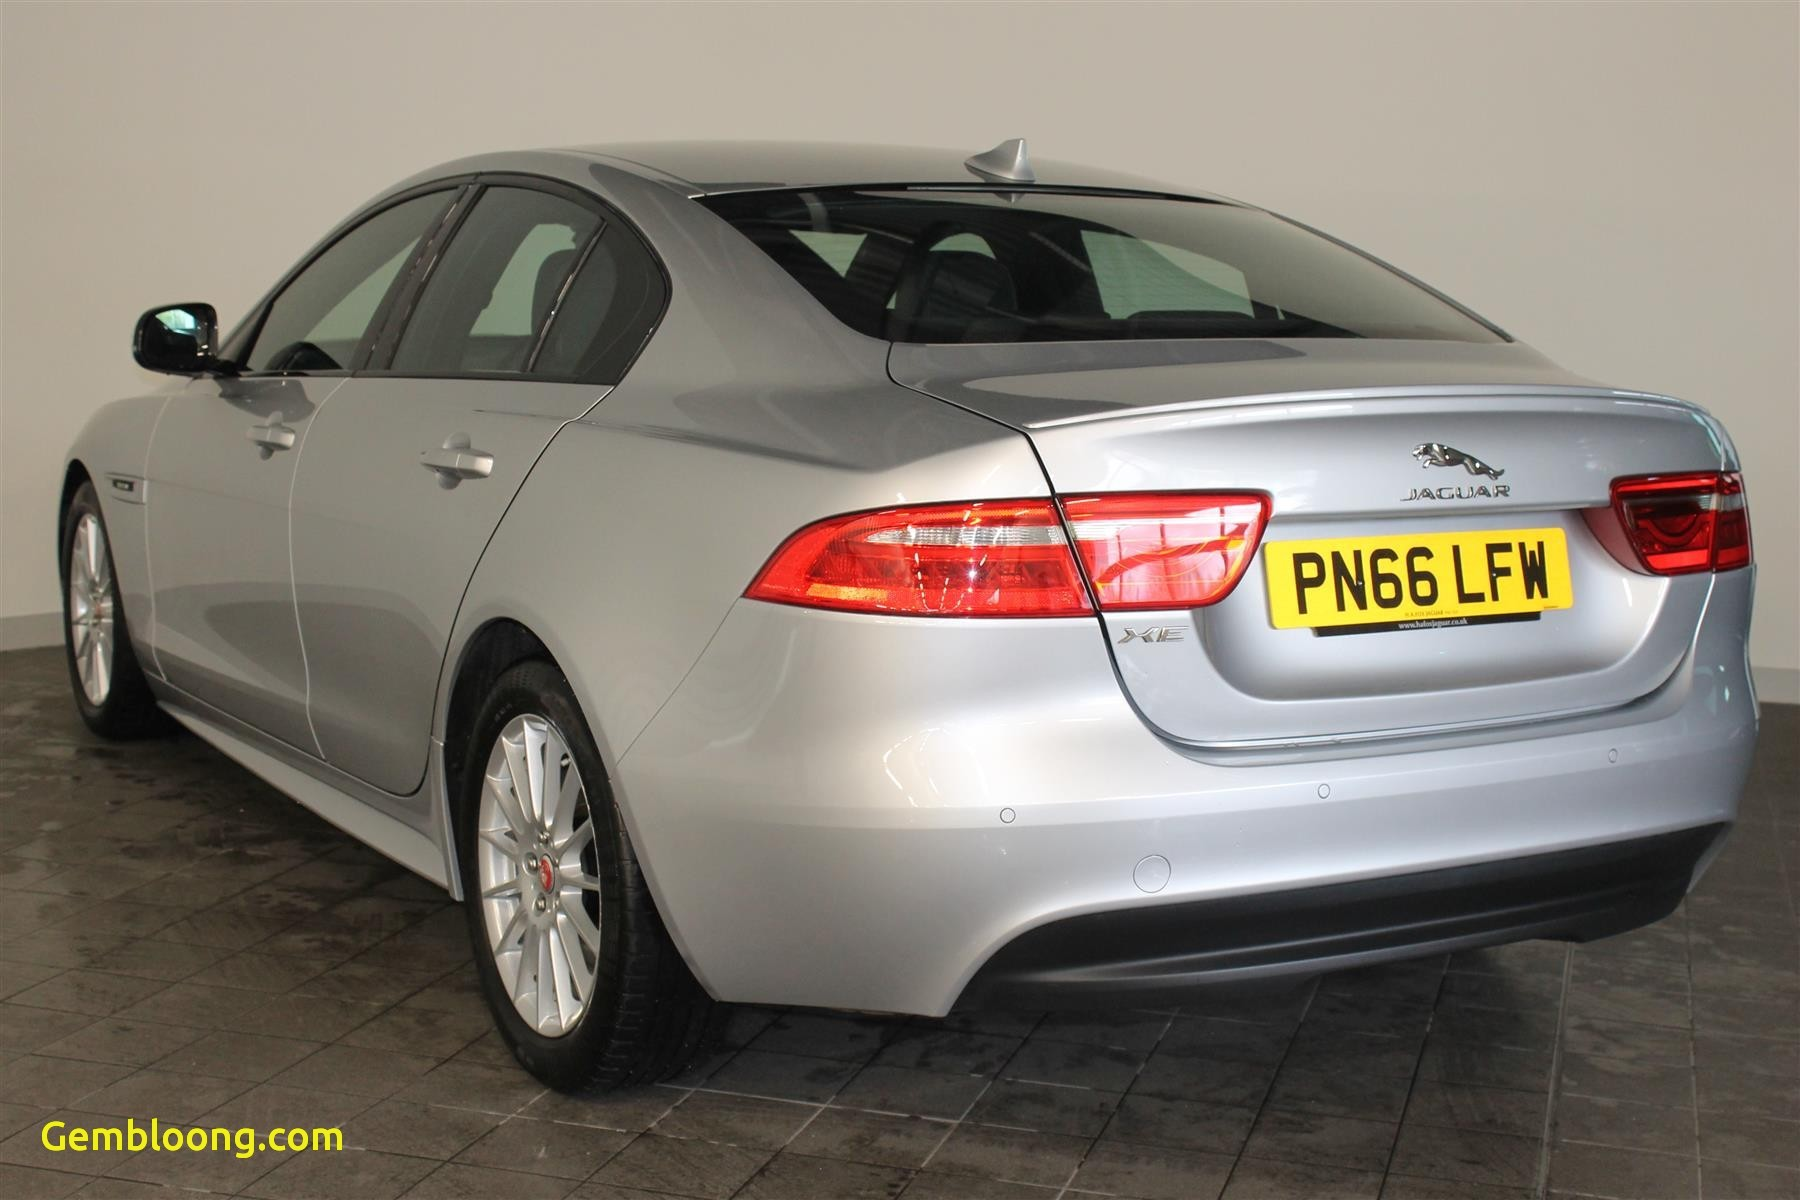 cars for sale near me with low mileage beautiful used cars for cheap luxury looking for